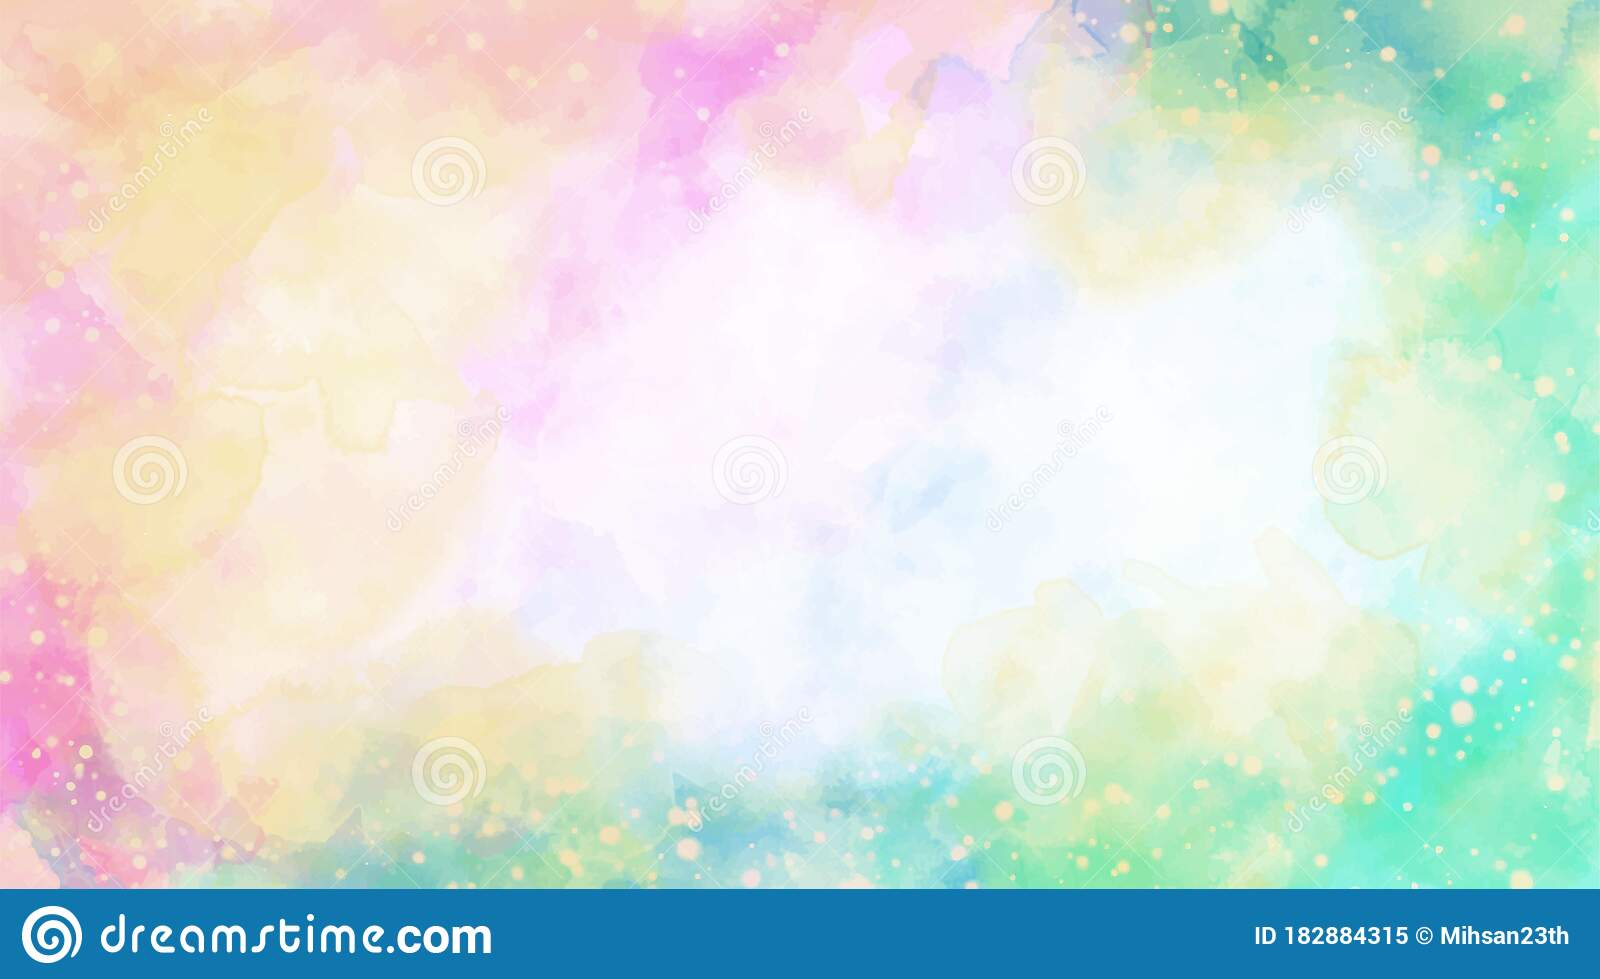 background abstrack 182884315